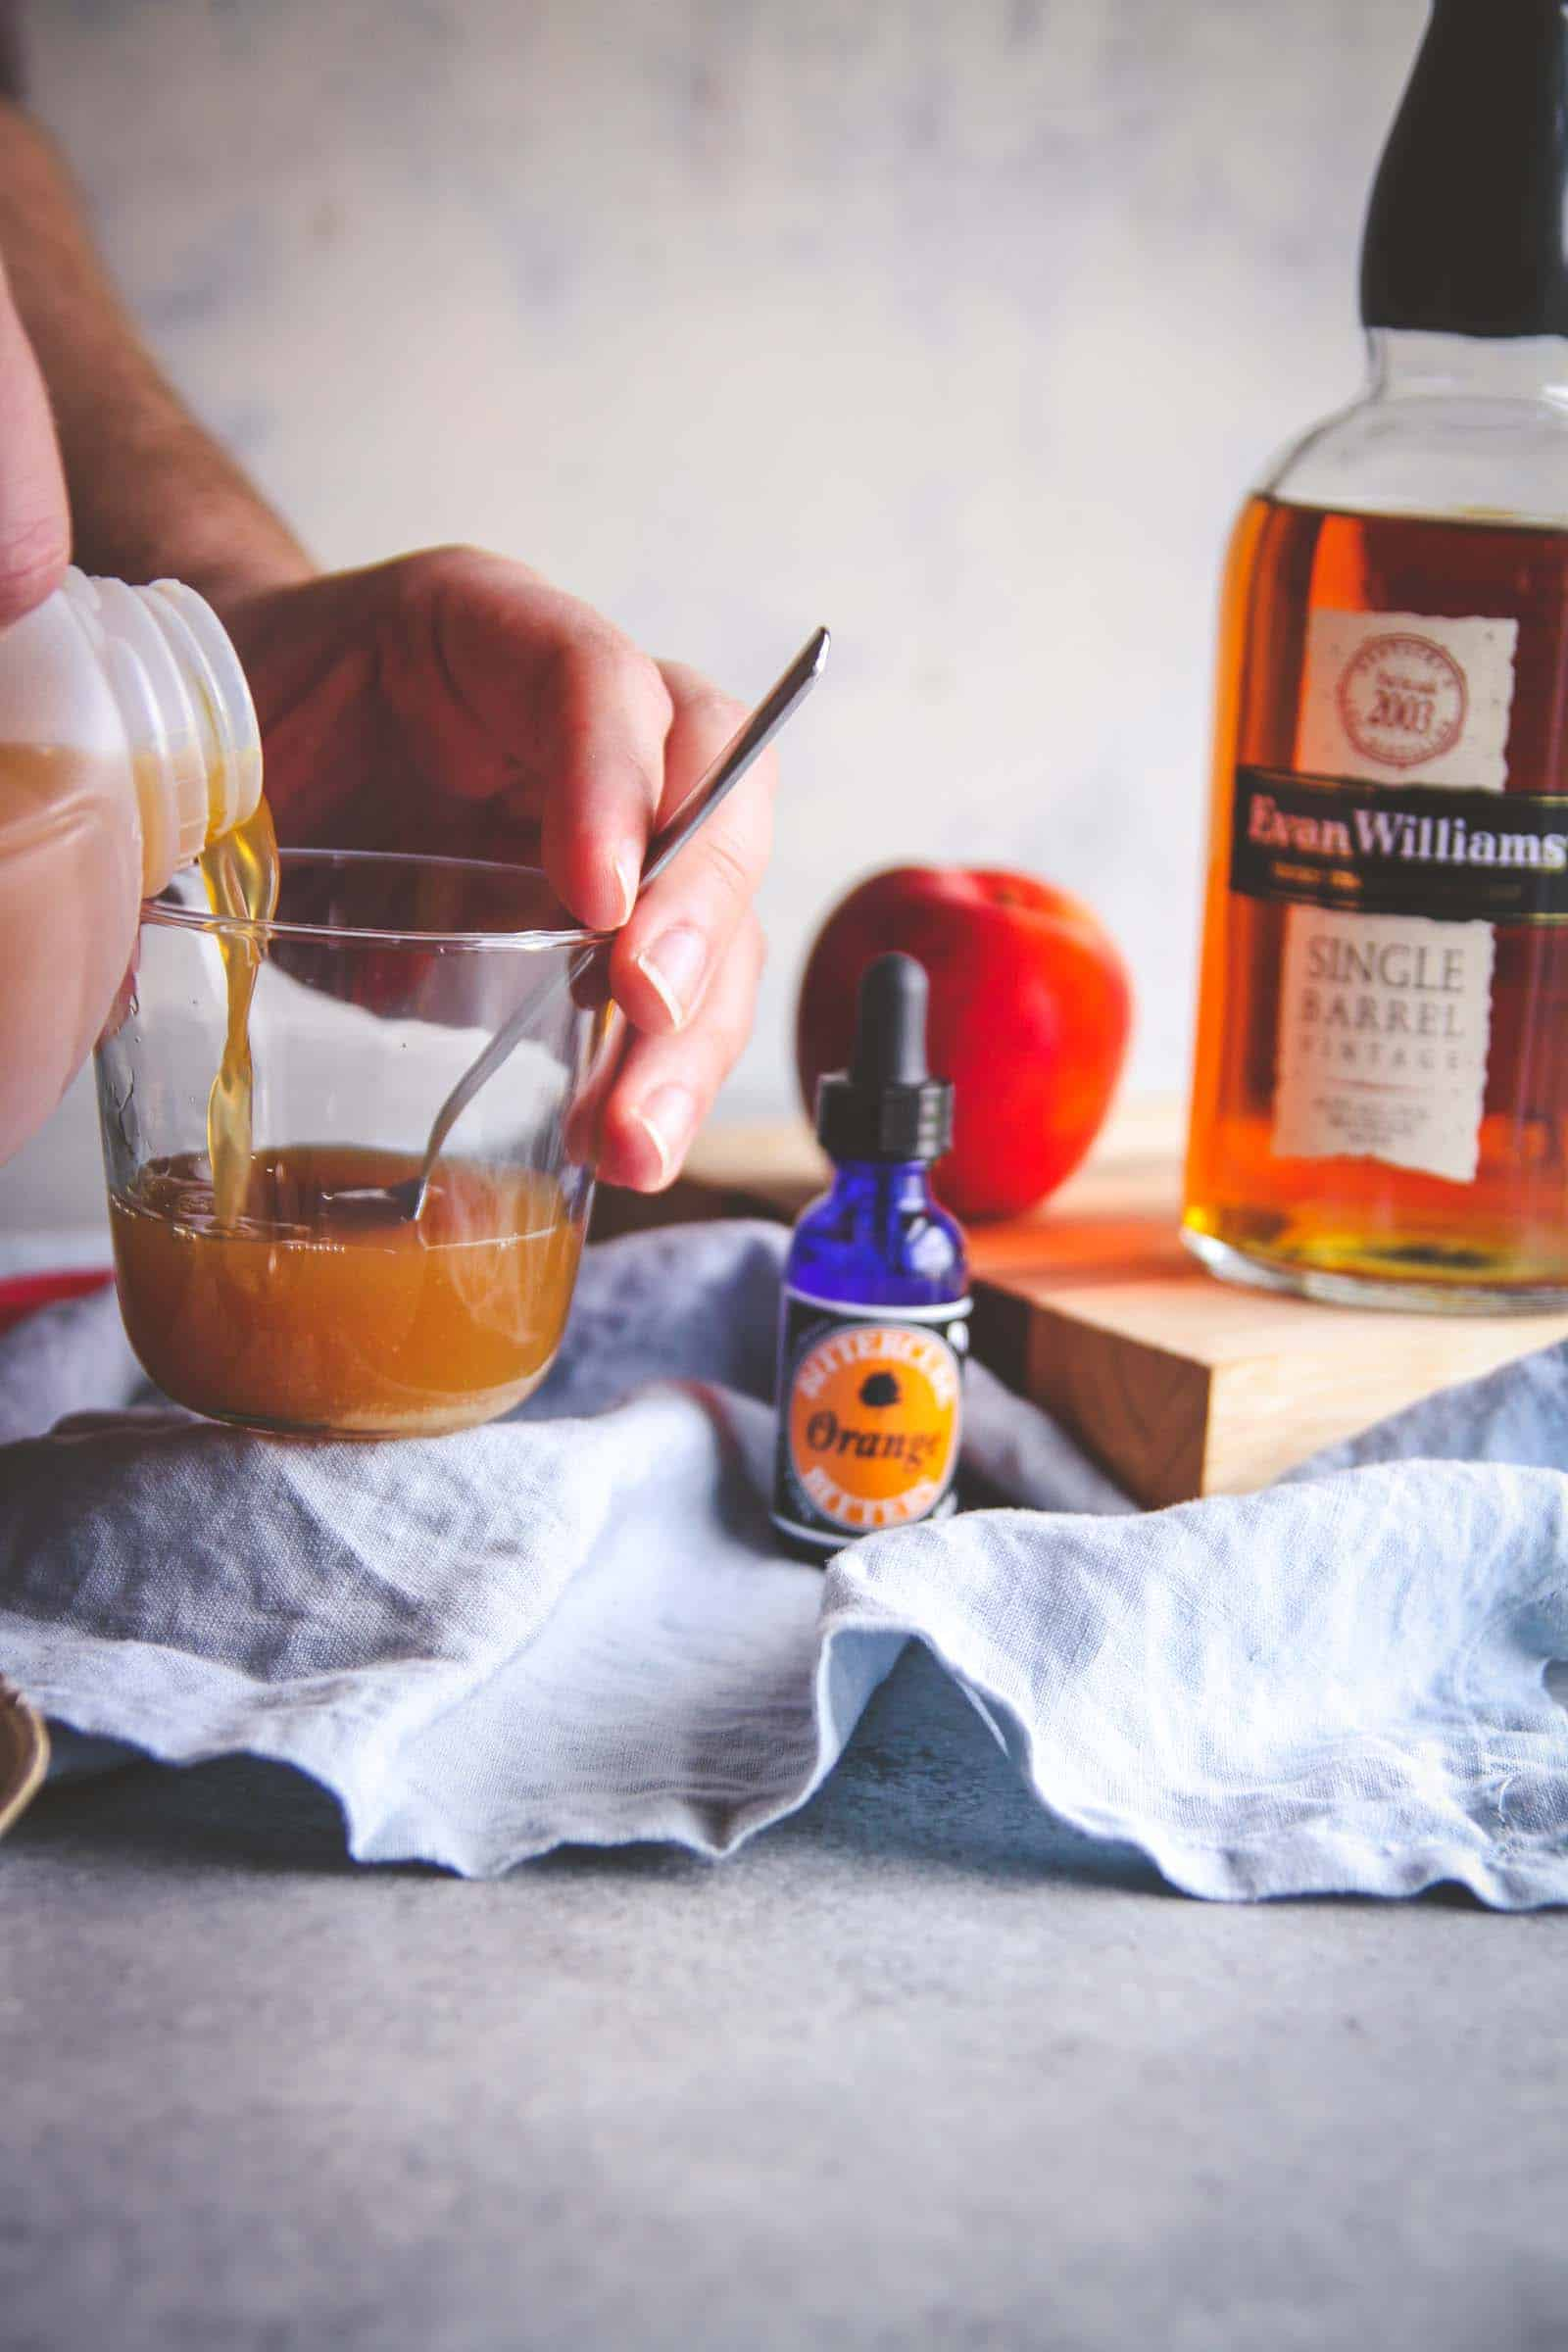 Making an old fashioned cocktail with apple cider